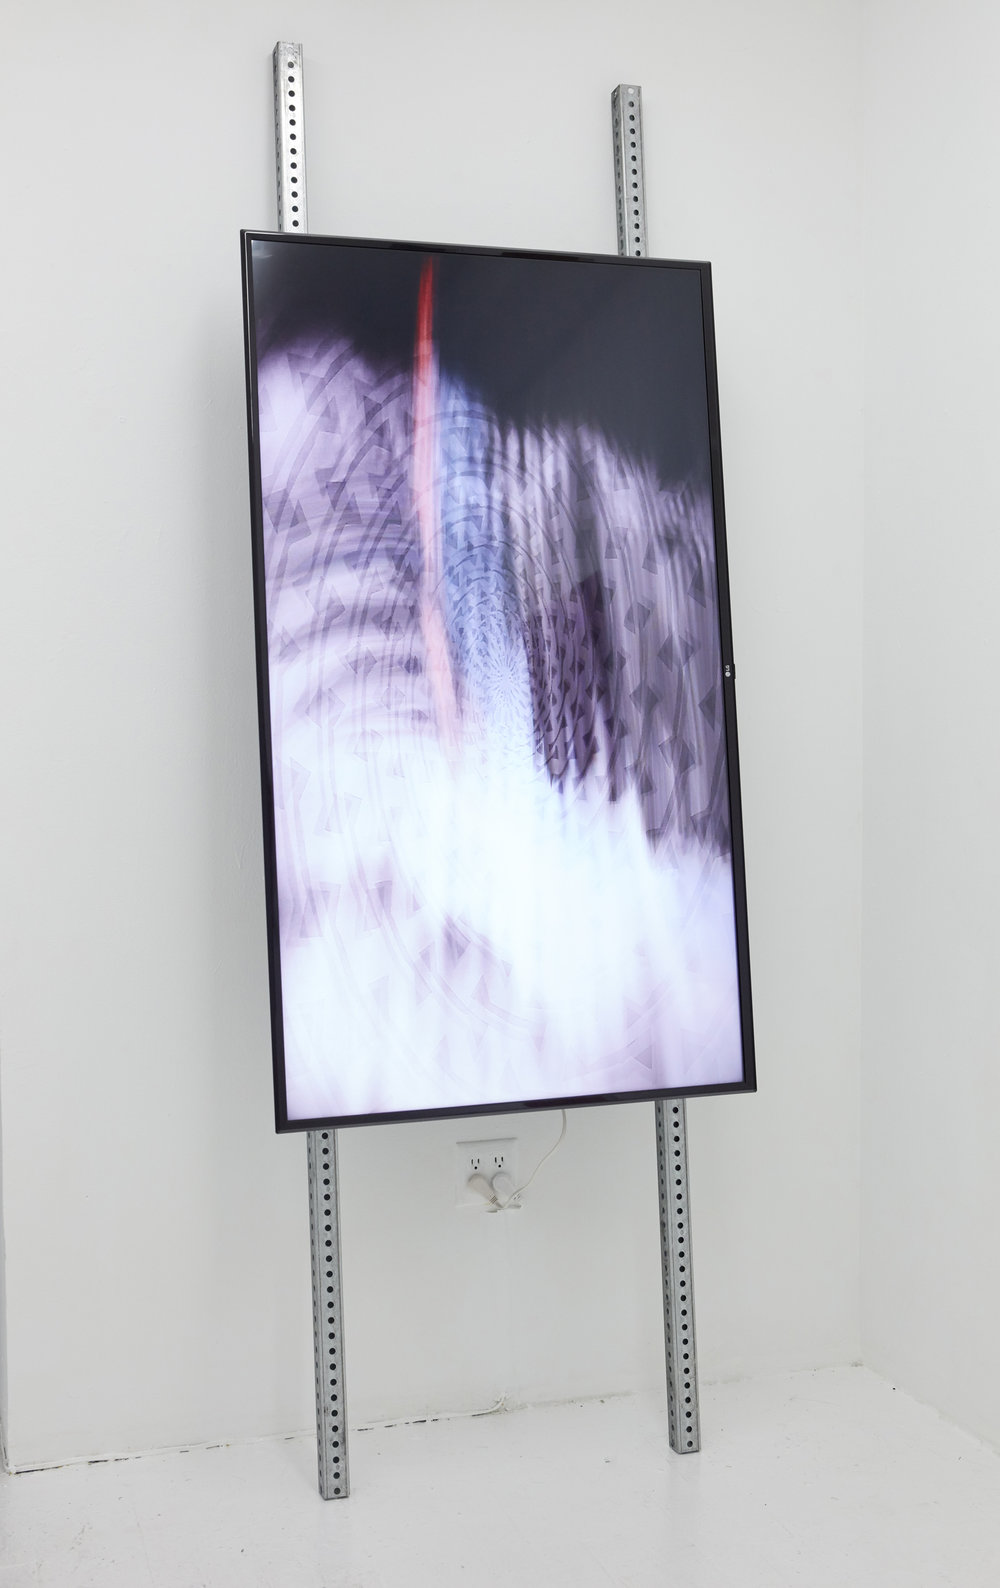 Mt. Sinai Movement,  2018. Steel, electronics, 4K video on monitor, silent. 2.45 minutes. 96 x 33 x 12 inches.